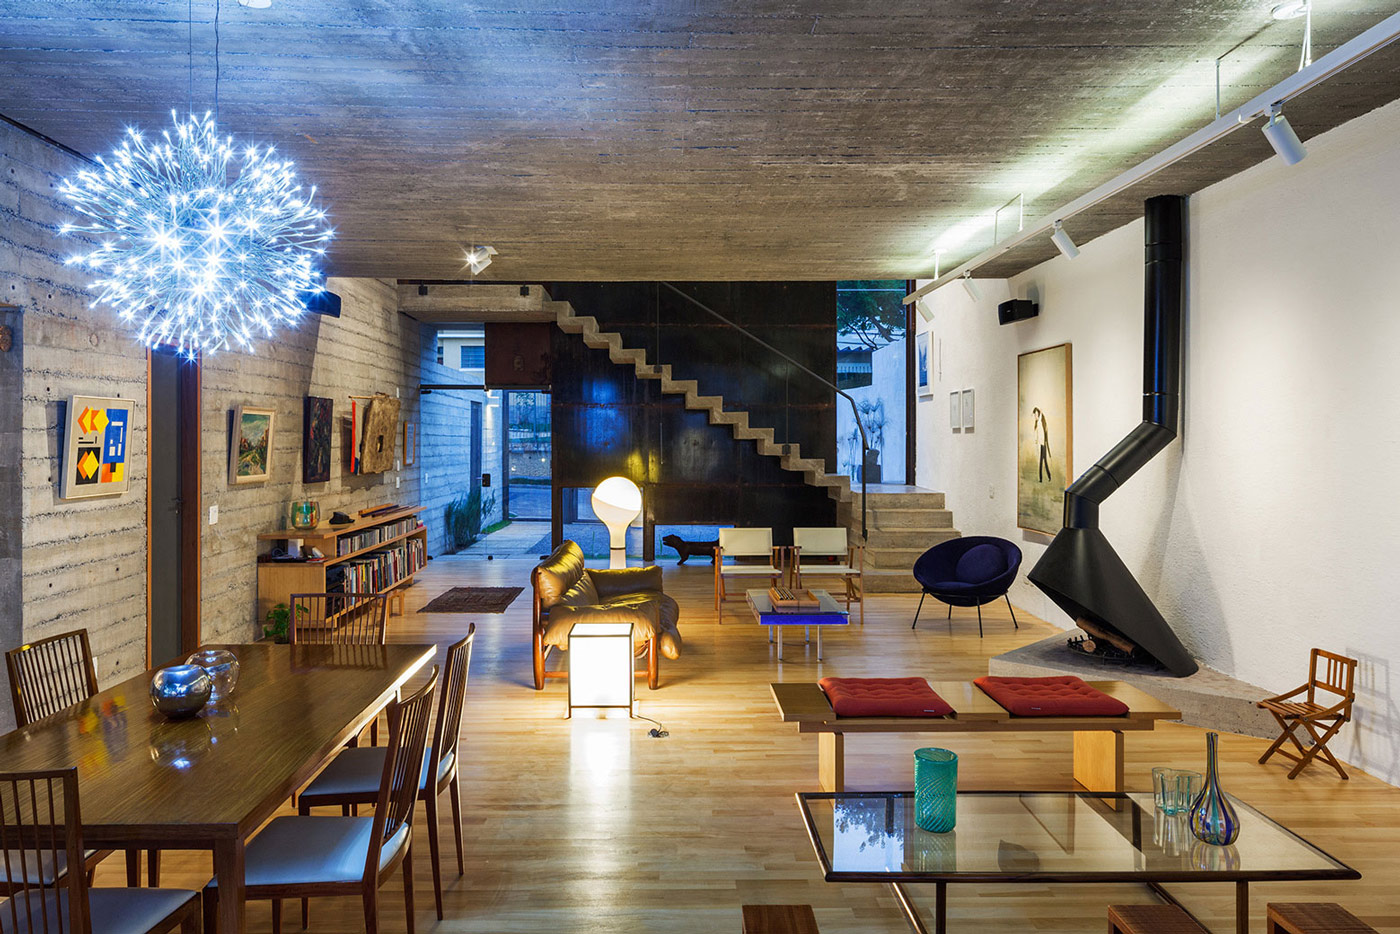 Fireplace, Stairs, Dining & Living Space, Trendy Urban House in São Paulo, Brazil